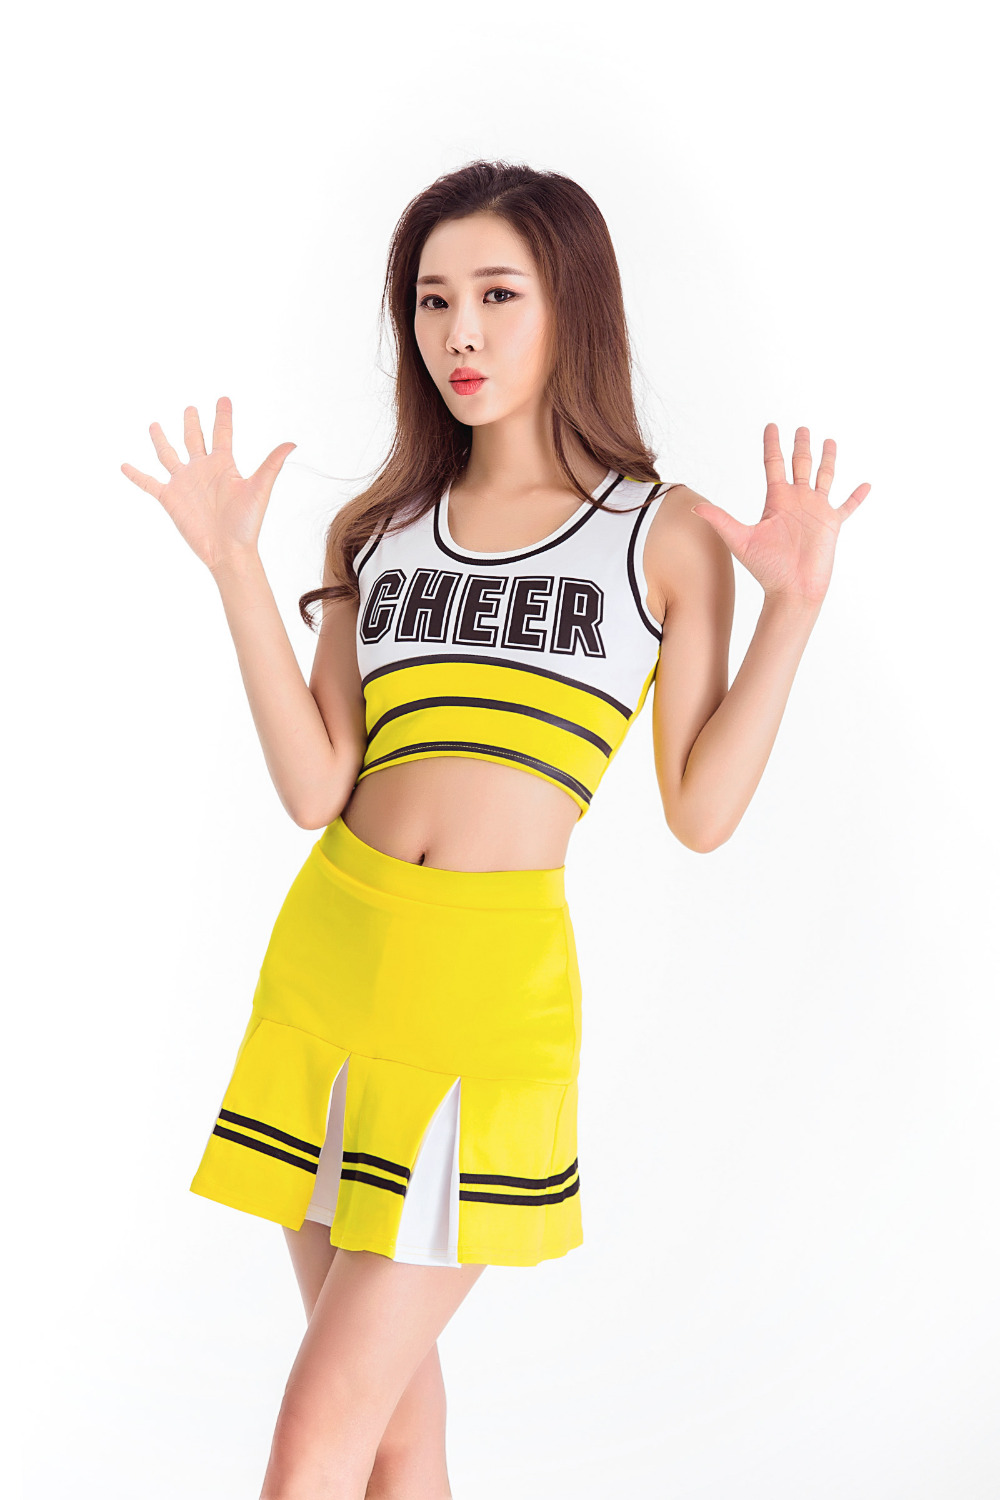 2018 Female Sexy High School Cheerleader Costume Sport Cheer Girls Uniform Costume Tops With Skirt S M L XL